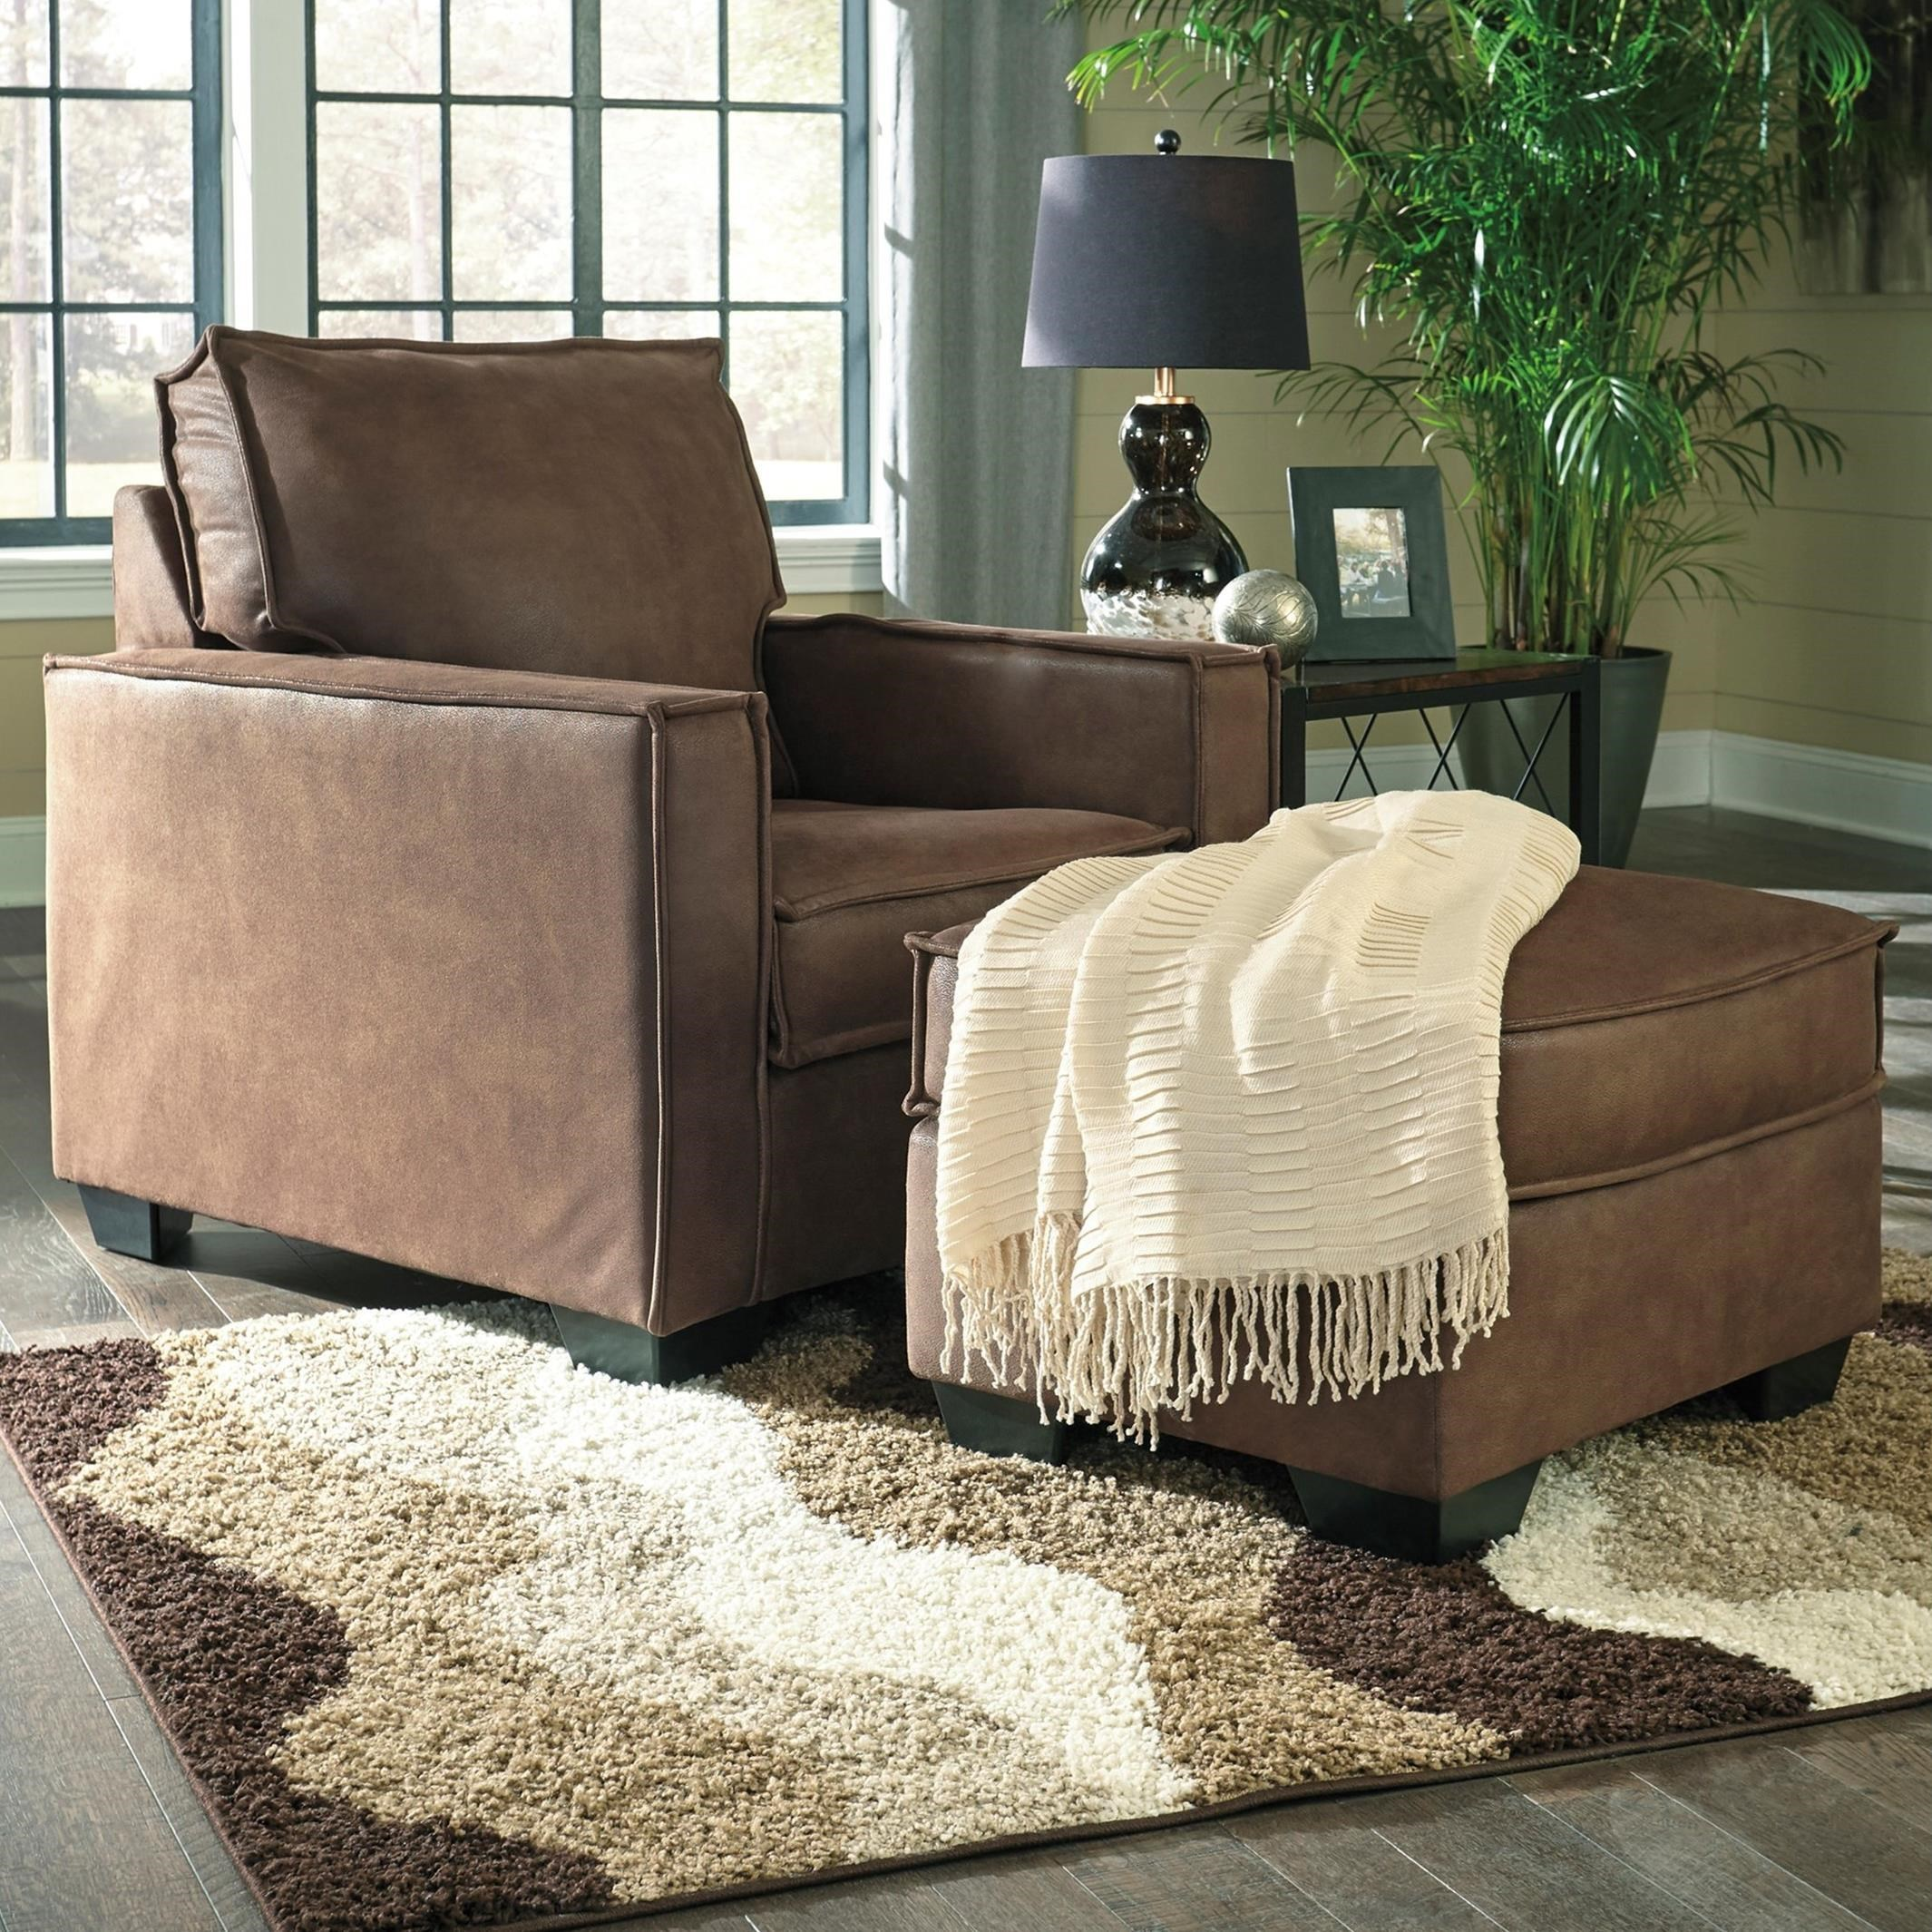 Signature Design By Ashley Terrington Faux Leather Chair U0026 Ottoman With  Piecrust Welt Trim